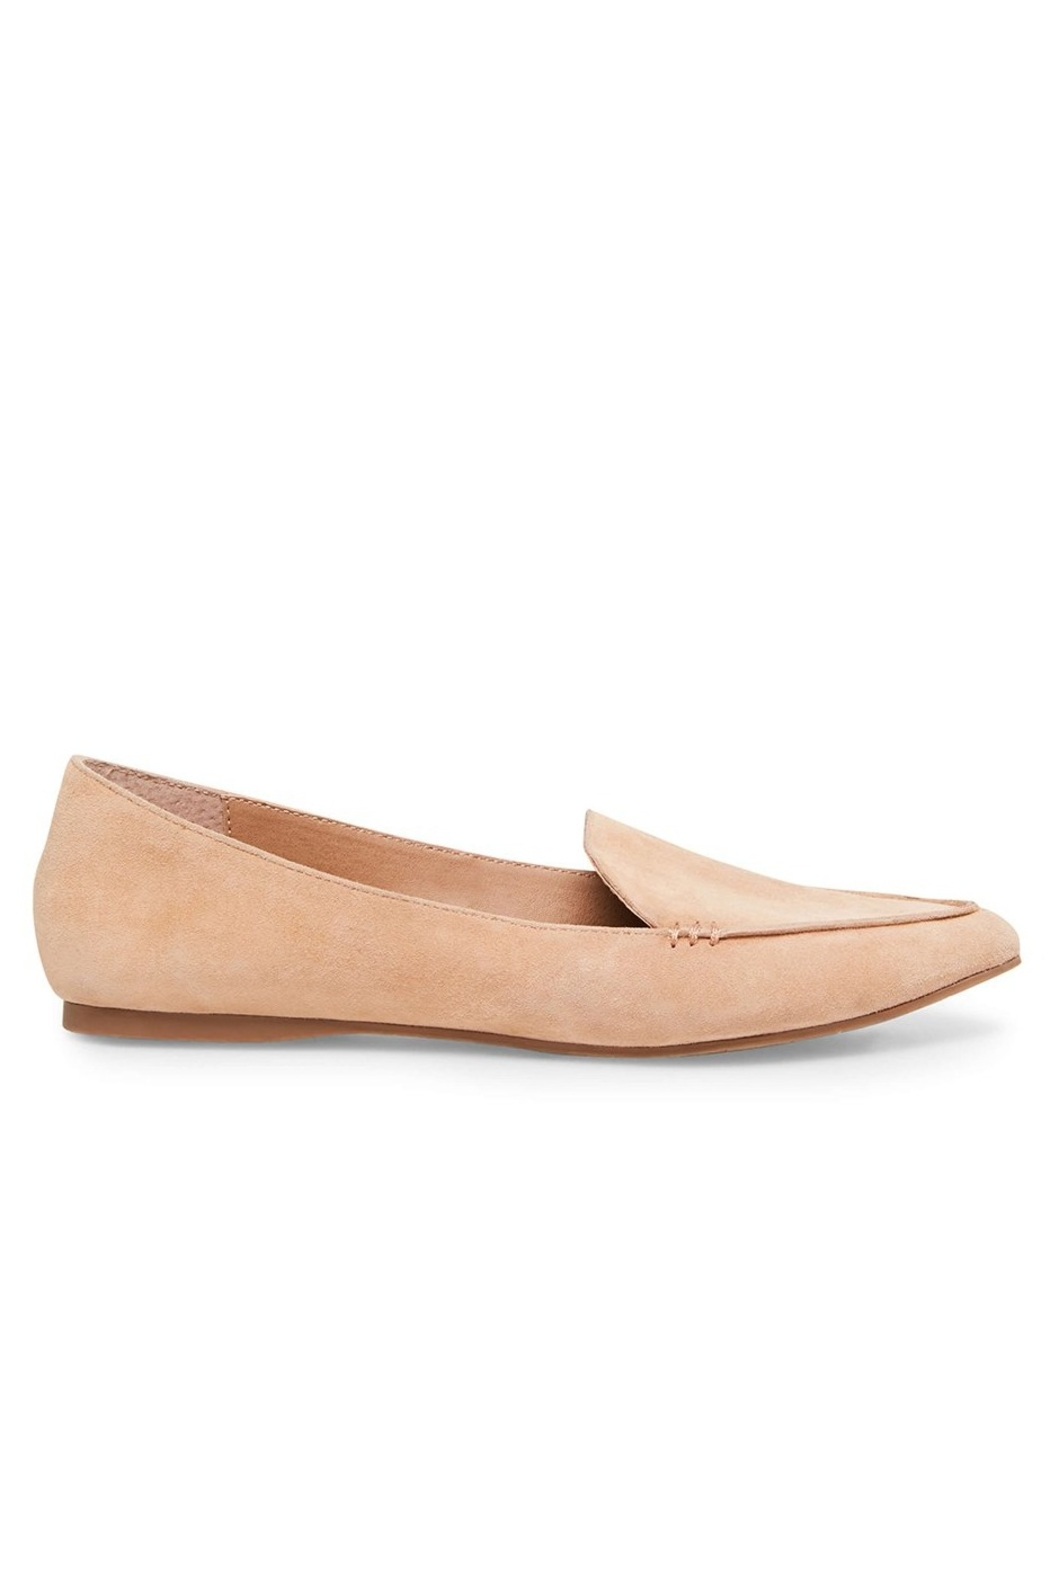 Steve Madden Feather Pointed Flat - Front Full Image